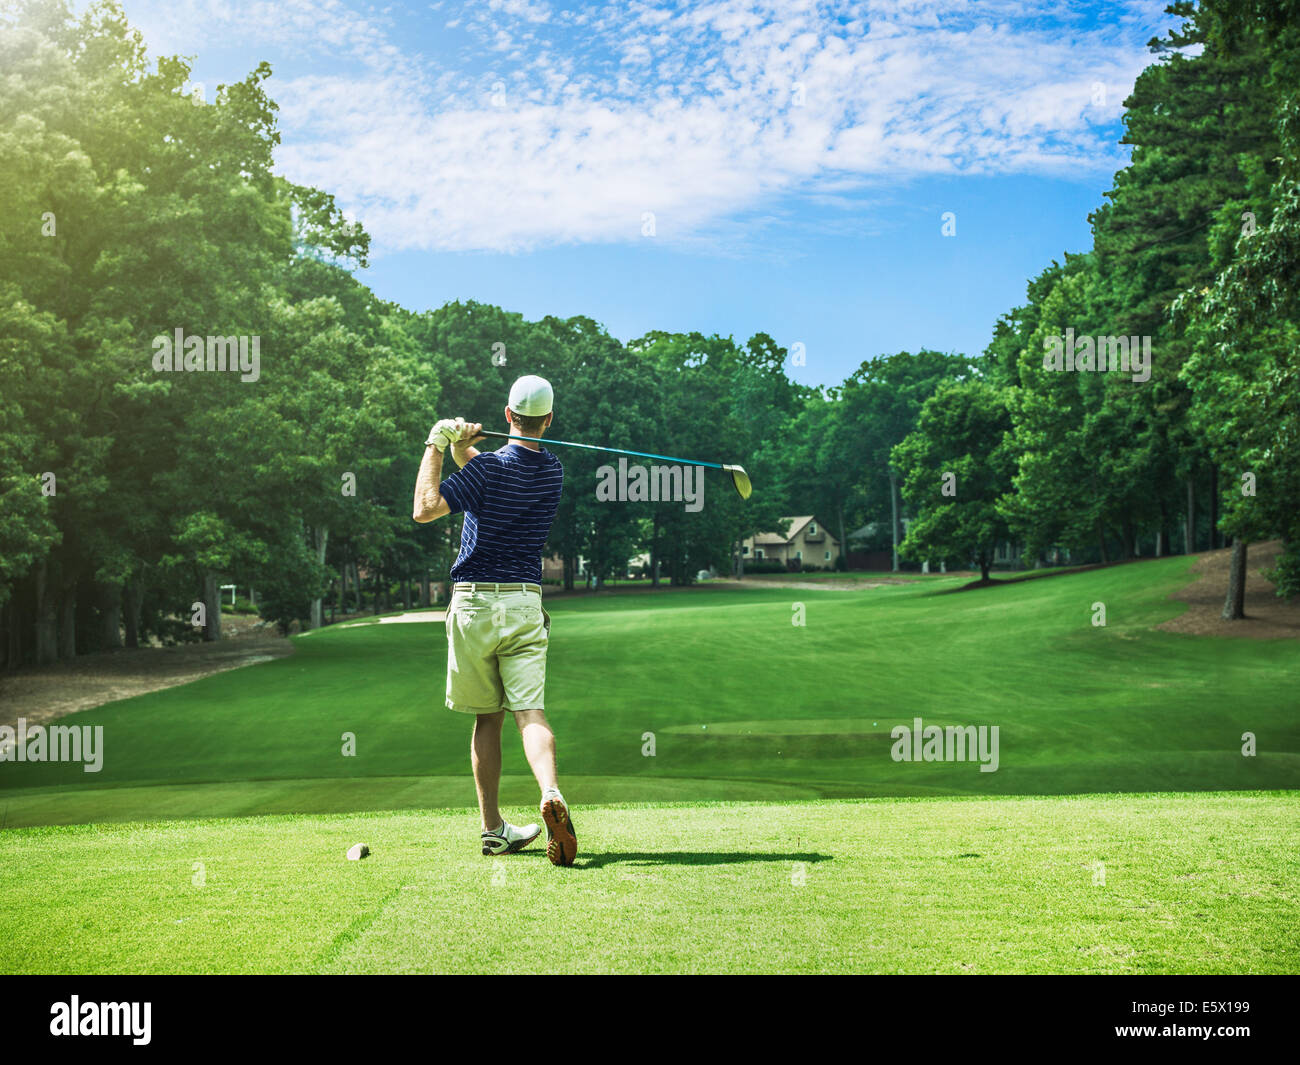 Rear view of young male golfer teeing off on golf course, Apex, North Carolina, USA - Stock Image